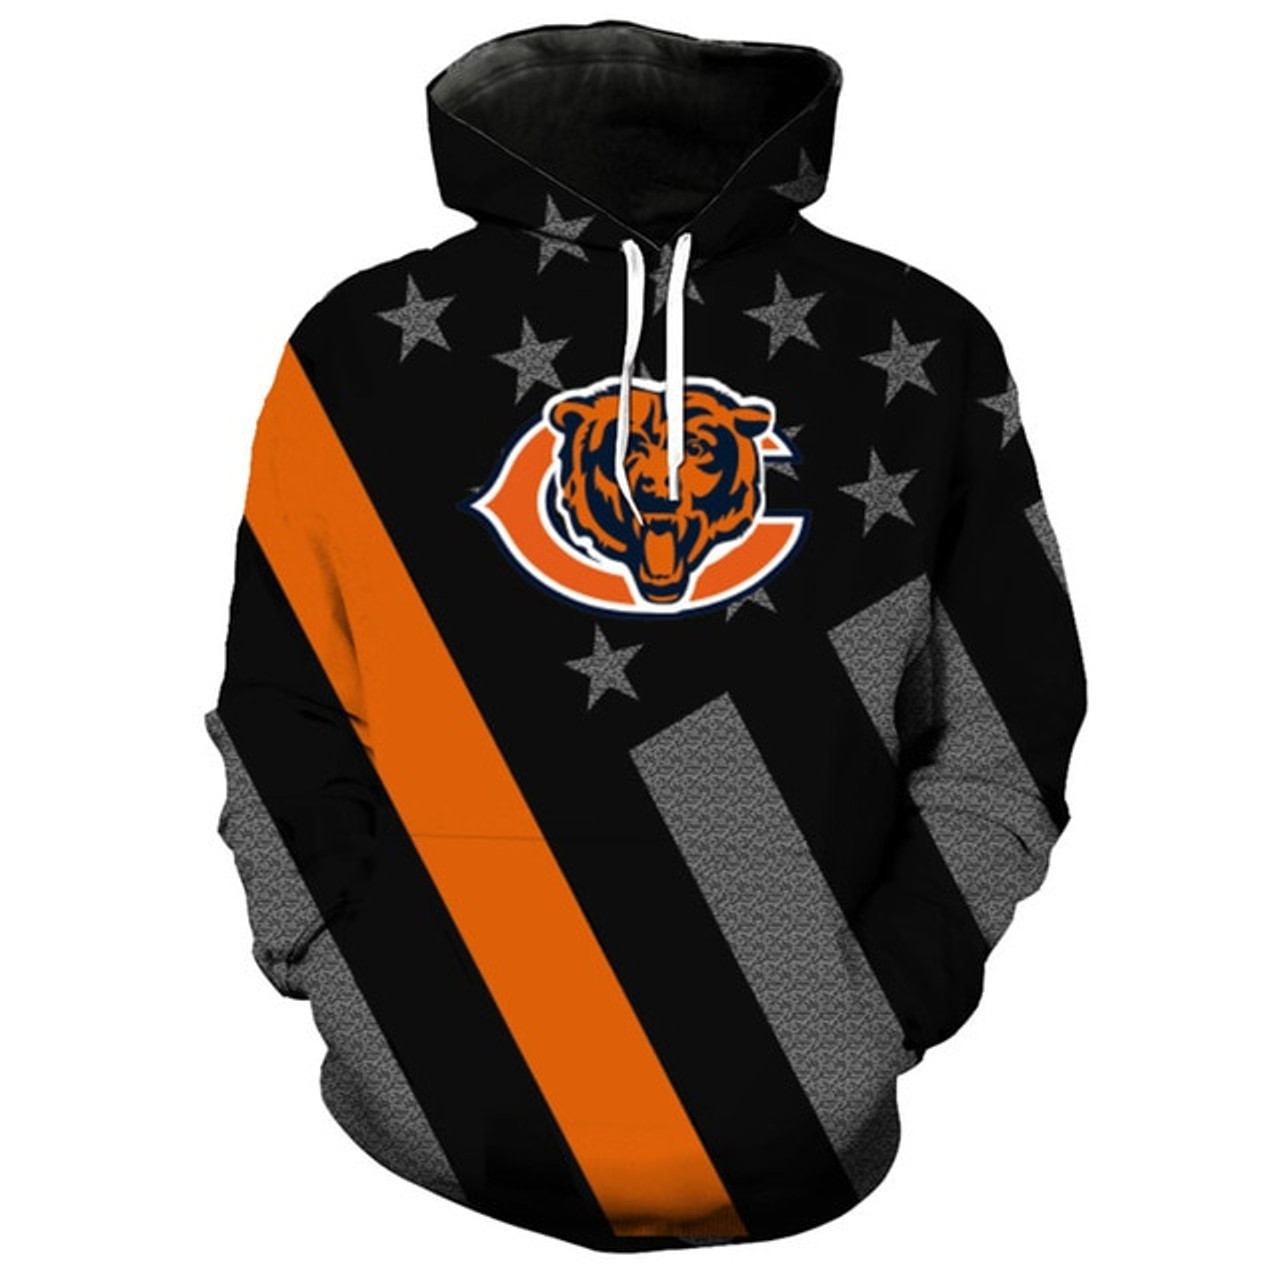 **(OFFICIAL-N.F.L.CHICAGO-BEARS-TRENDY-PATRIOTIC-PULLOVER-TEAM-HOODIES/NICE-CUSTOM-3D-EFFECT-GRAPHIC-PRINTED-DOUBLE-SIDED-ALL-OVER-OFFICIAL-BEARS-LOGOS & IN-BEARS-TEAM-COLORS/WARM-PREMIUM-OFFICIAL-N.F.L.BEARS-TEAM-PULLOVER-POCKET-HOODIES)**